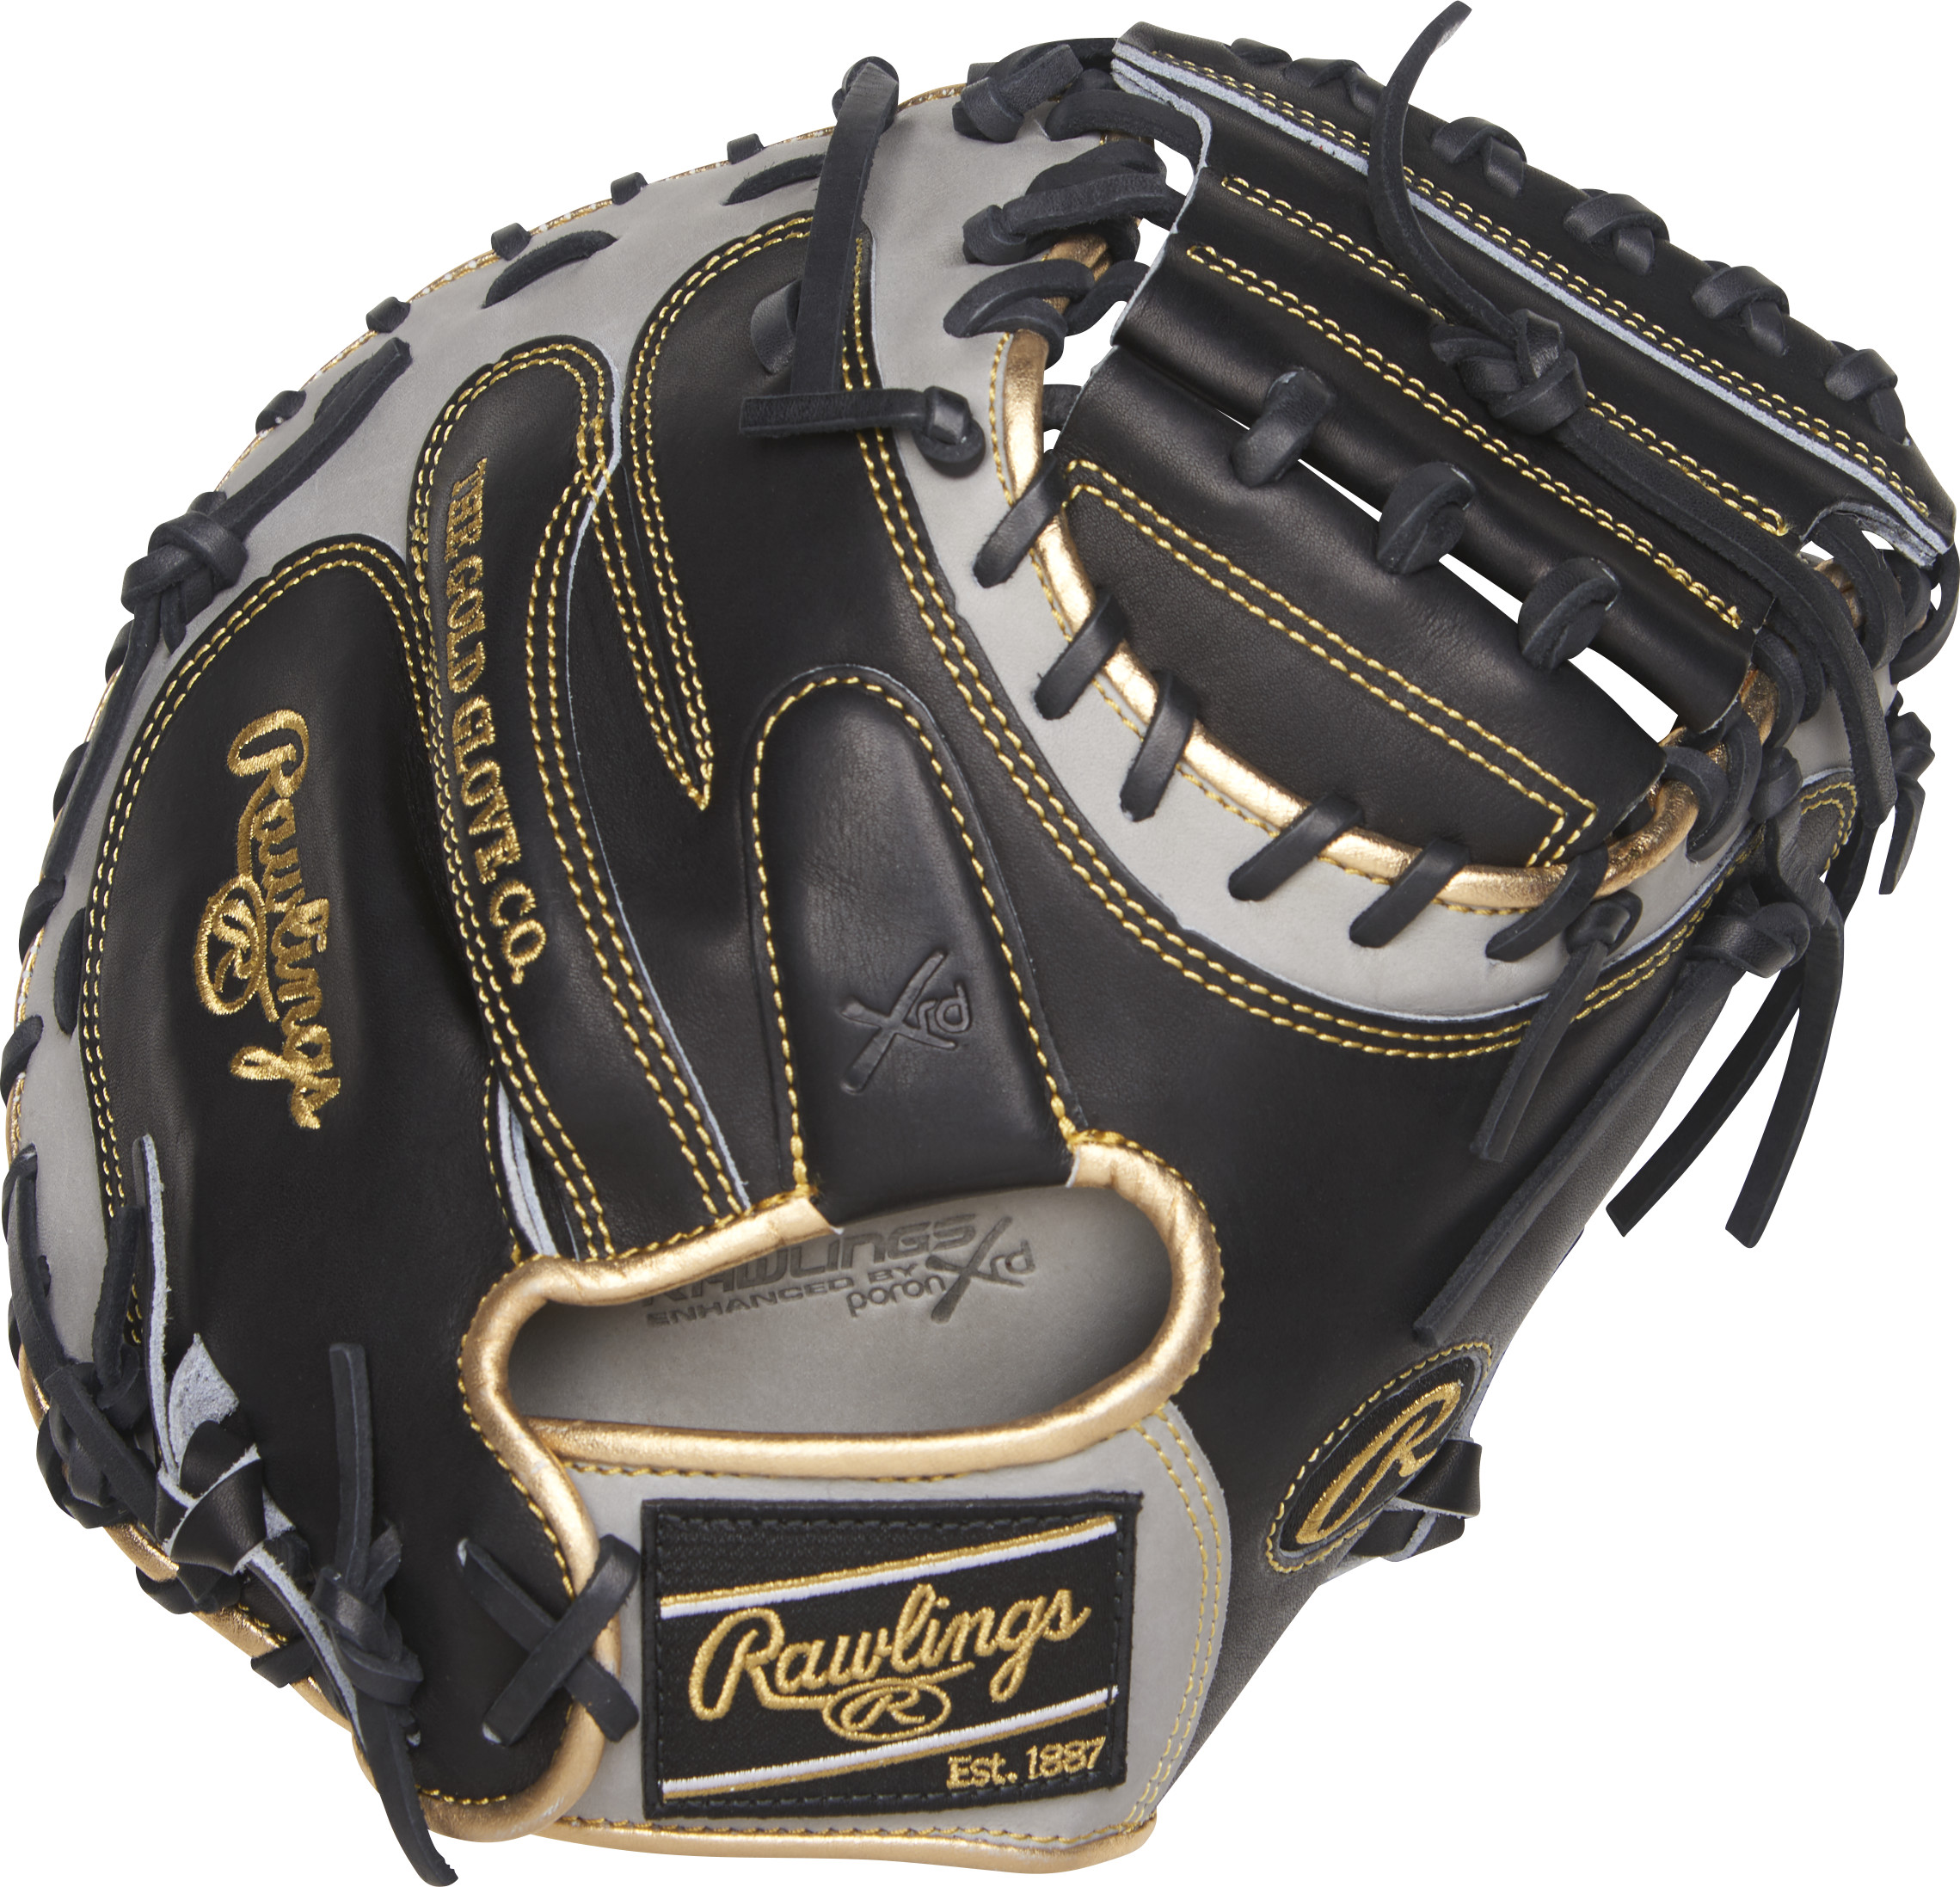 http://www.bestbatdeals.com/images/gloves/rawlings/PROCM33BGG-2.jpg